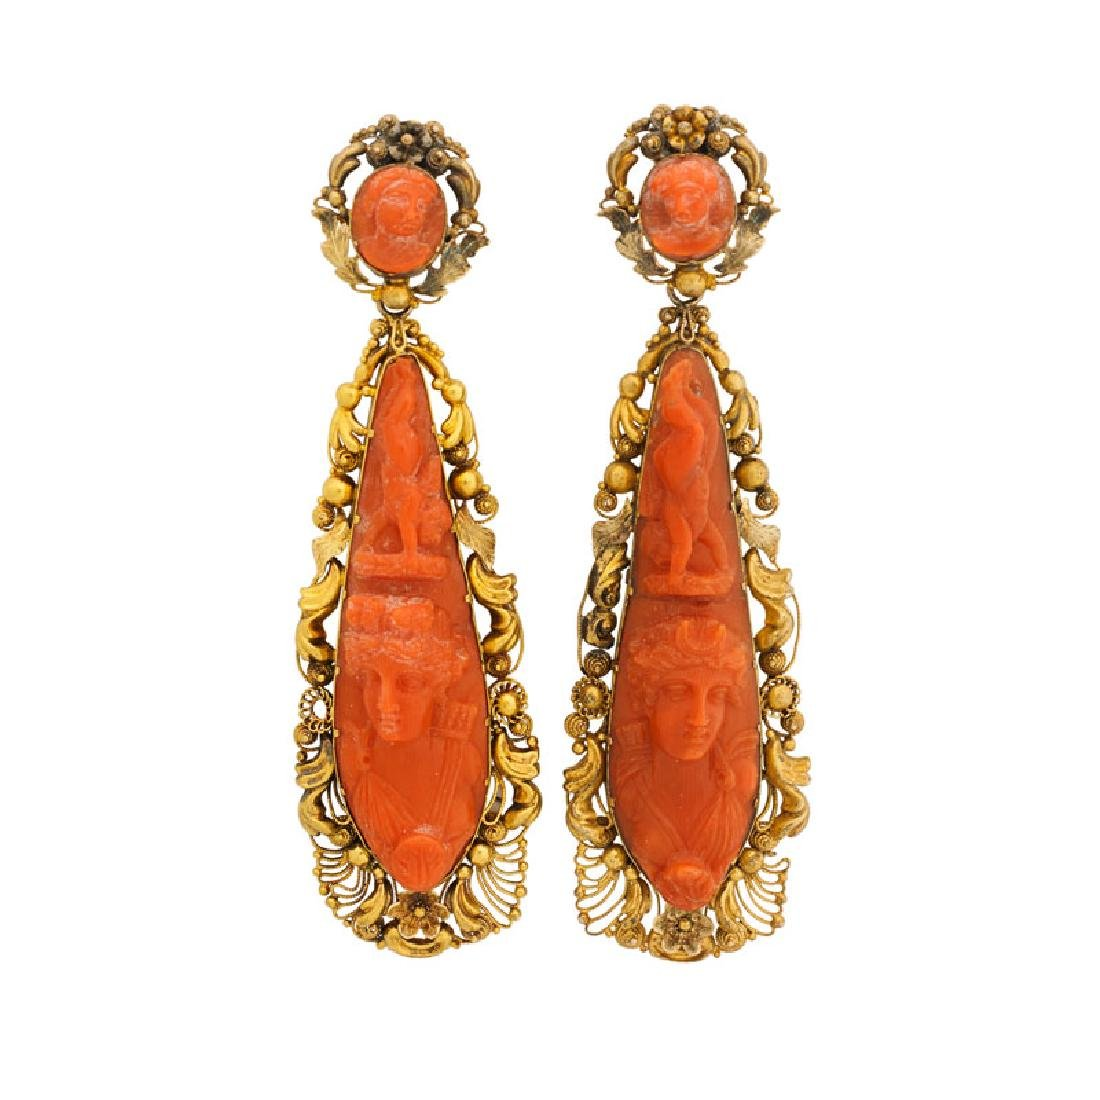 VICTORIAN CARVED CORAL & YELLOW GOLD EARRINGS